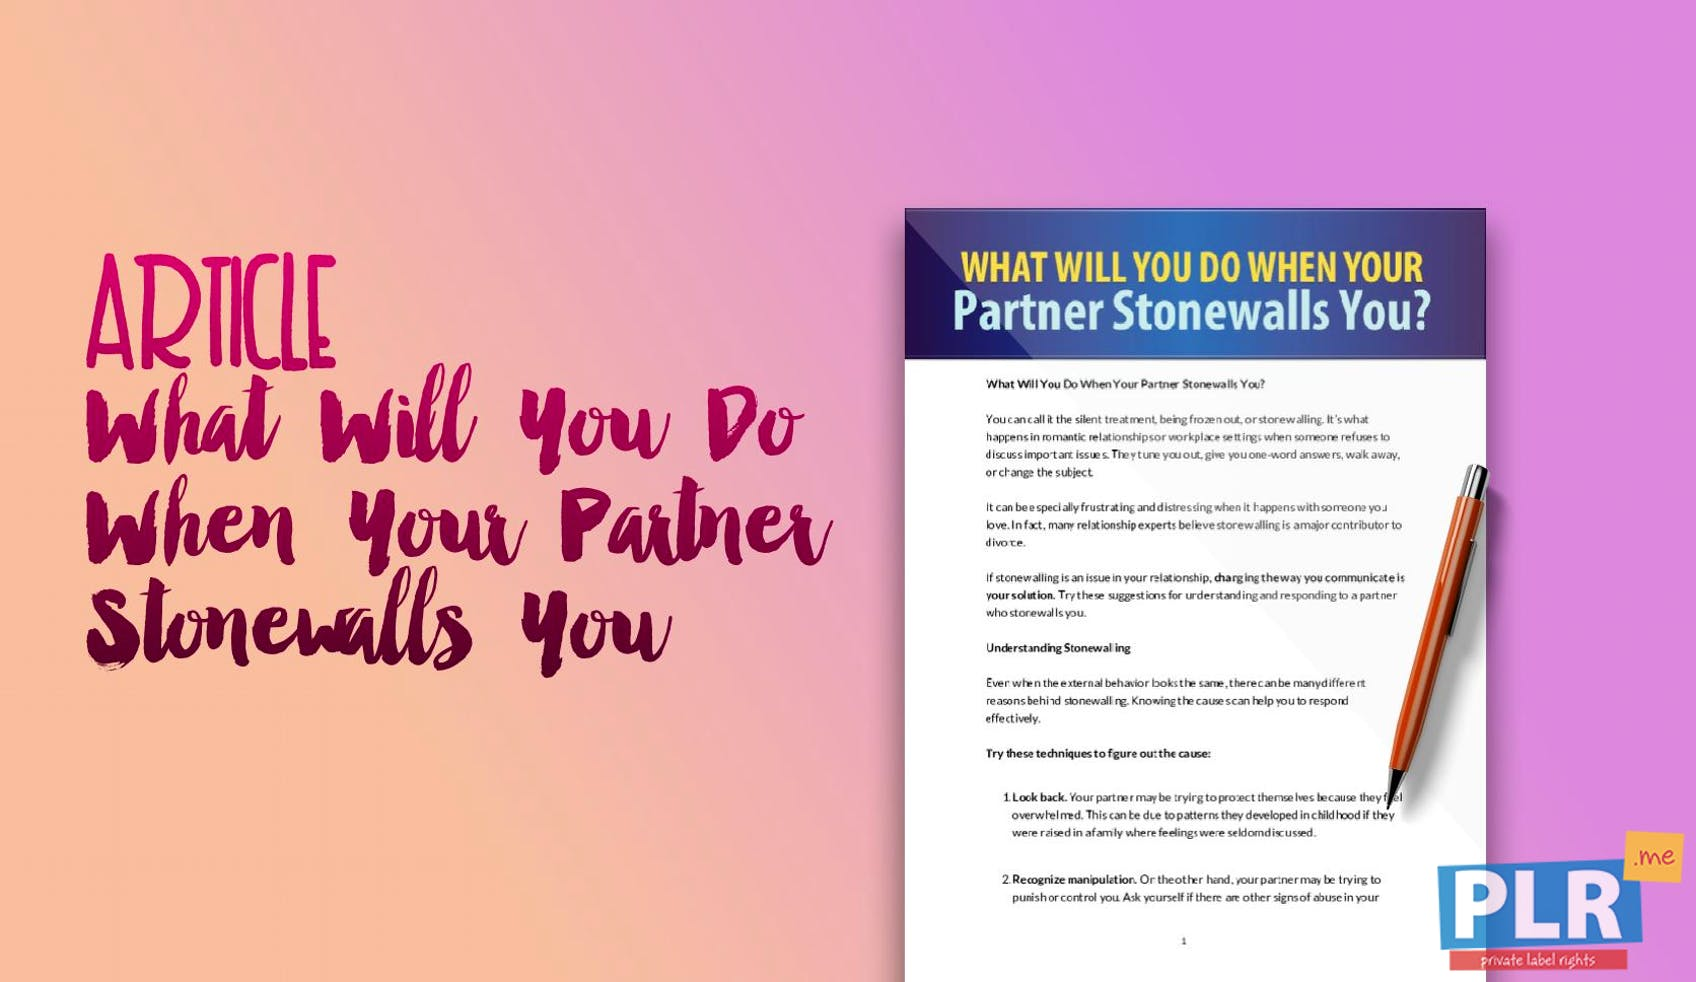 What Will You Do When Your Partner Stonewalls You